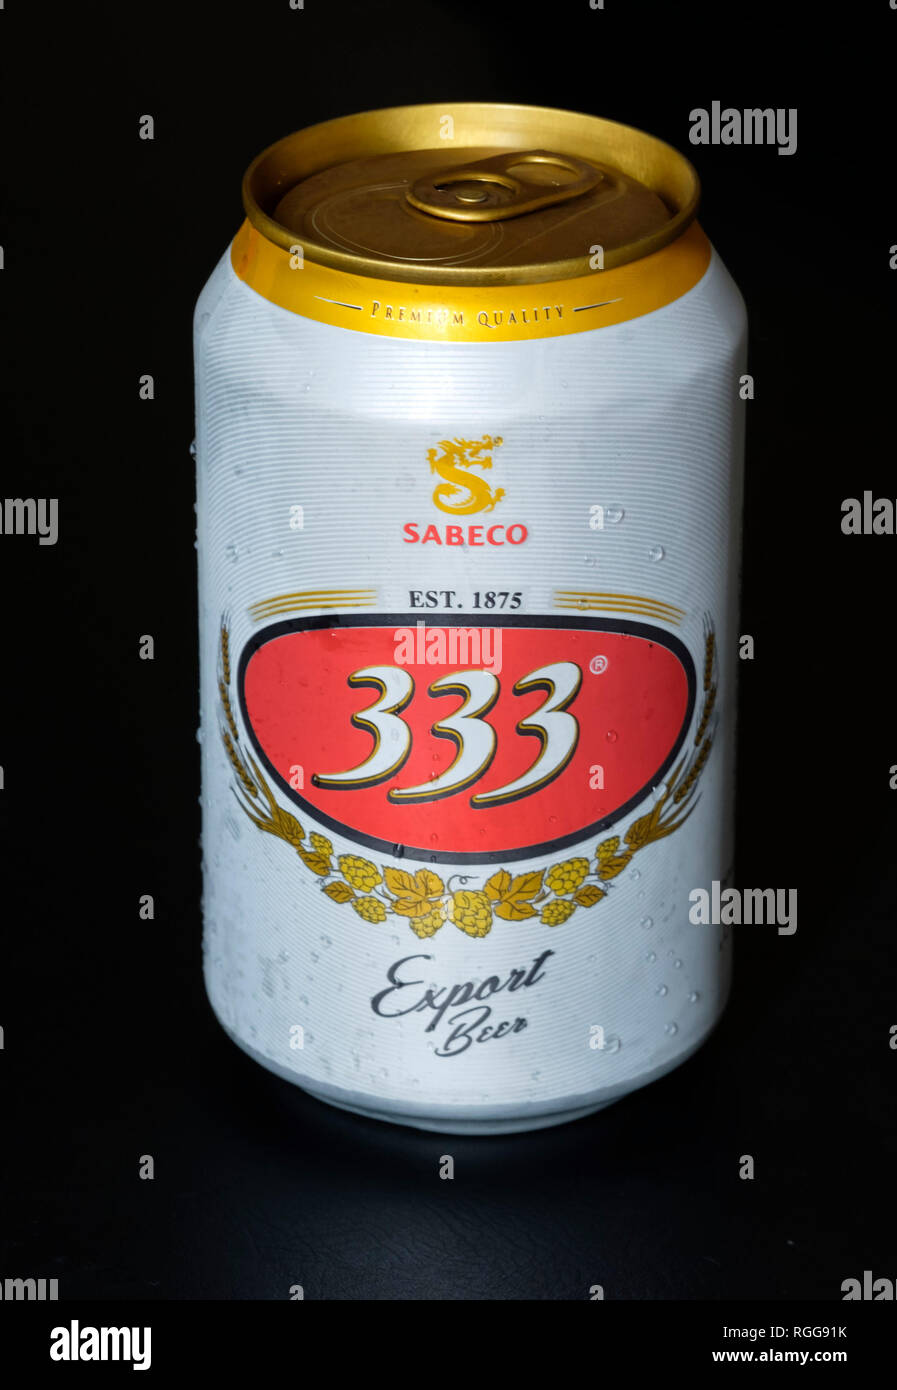 Sabeco 333 vietnamese beer can - Stock Image